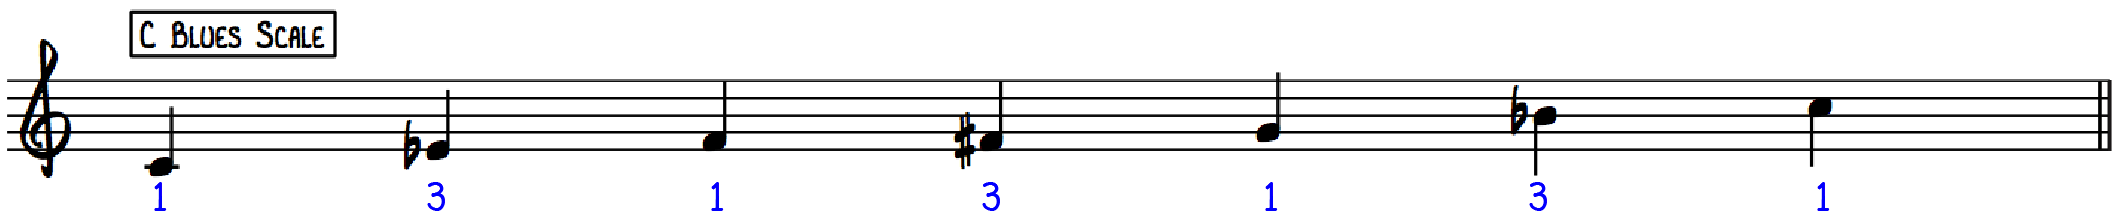 C Blues Scale with Piano Fingerings